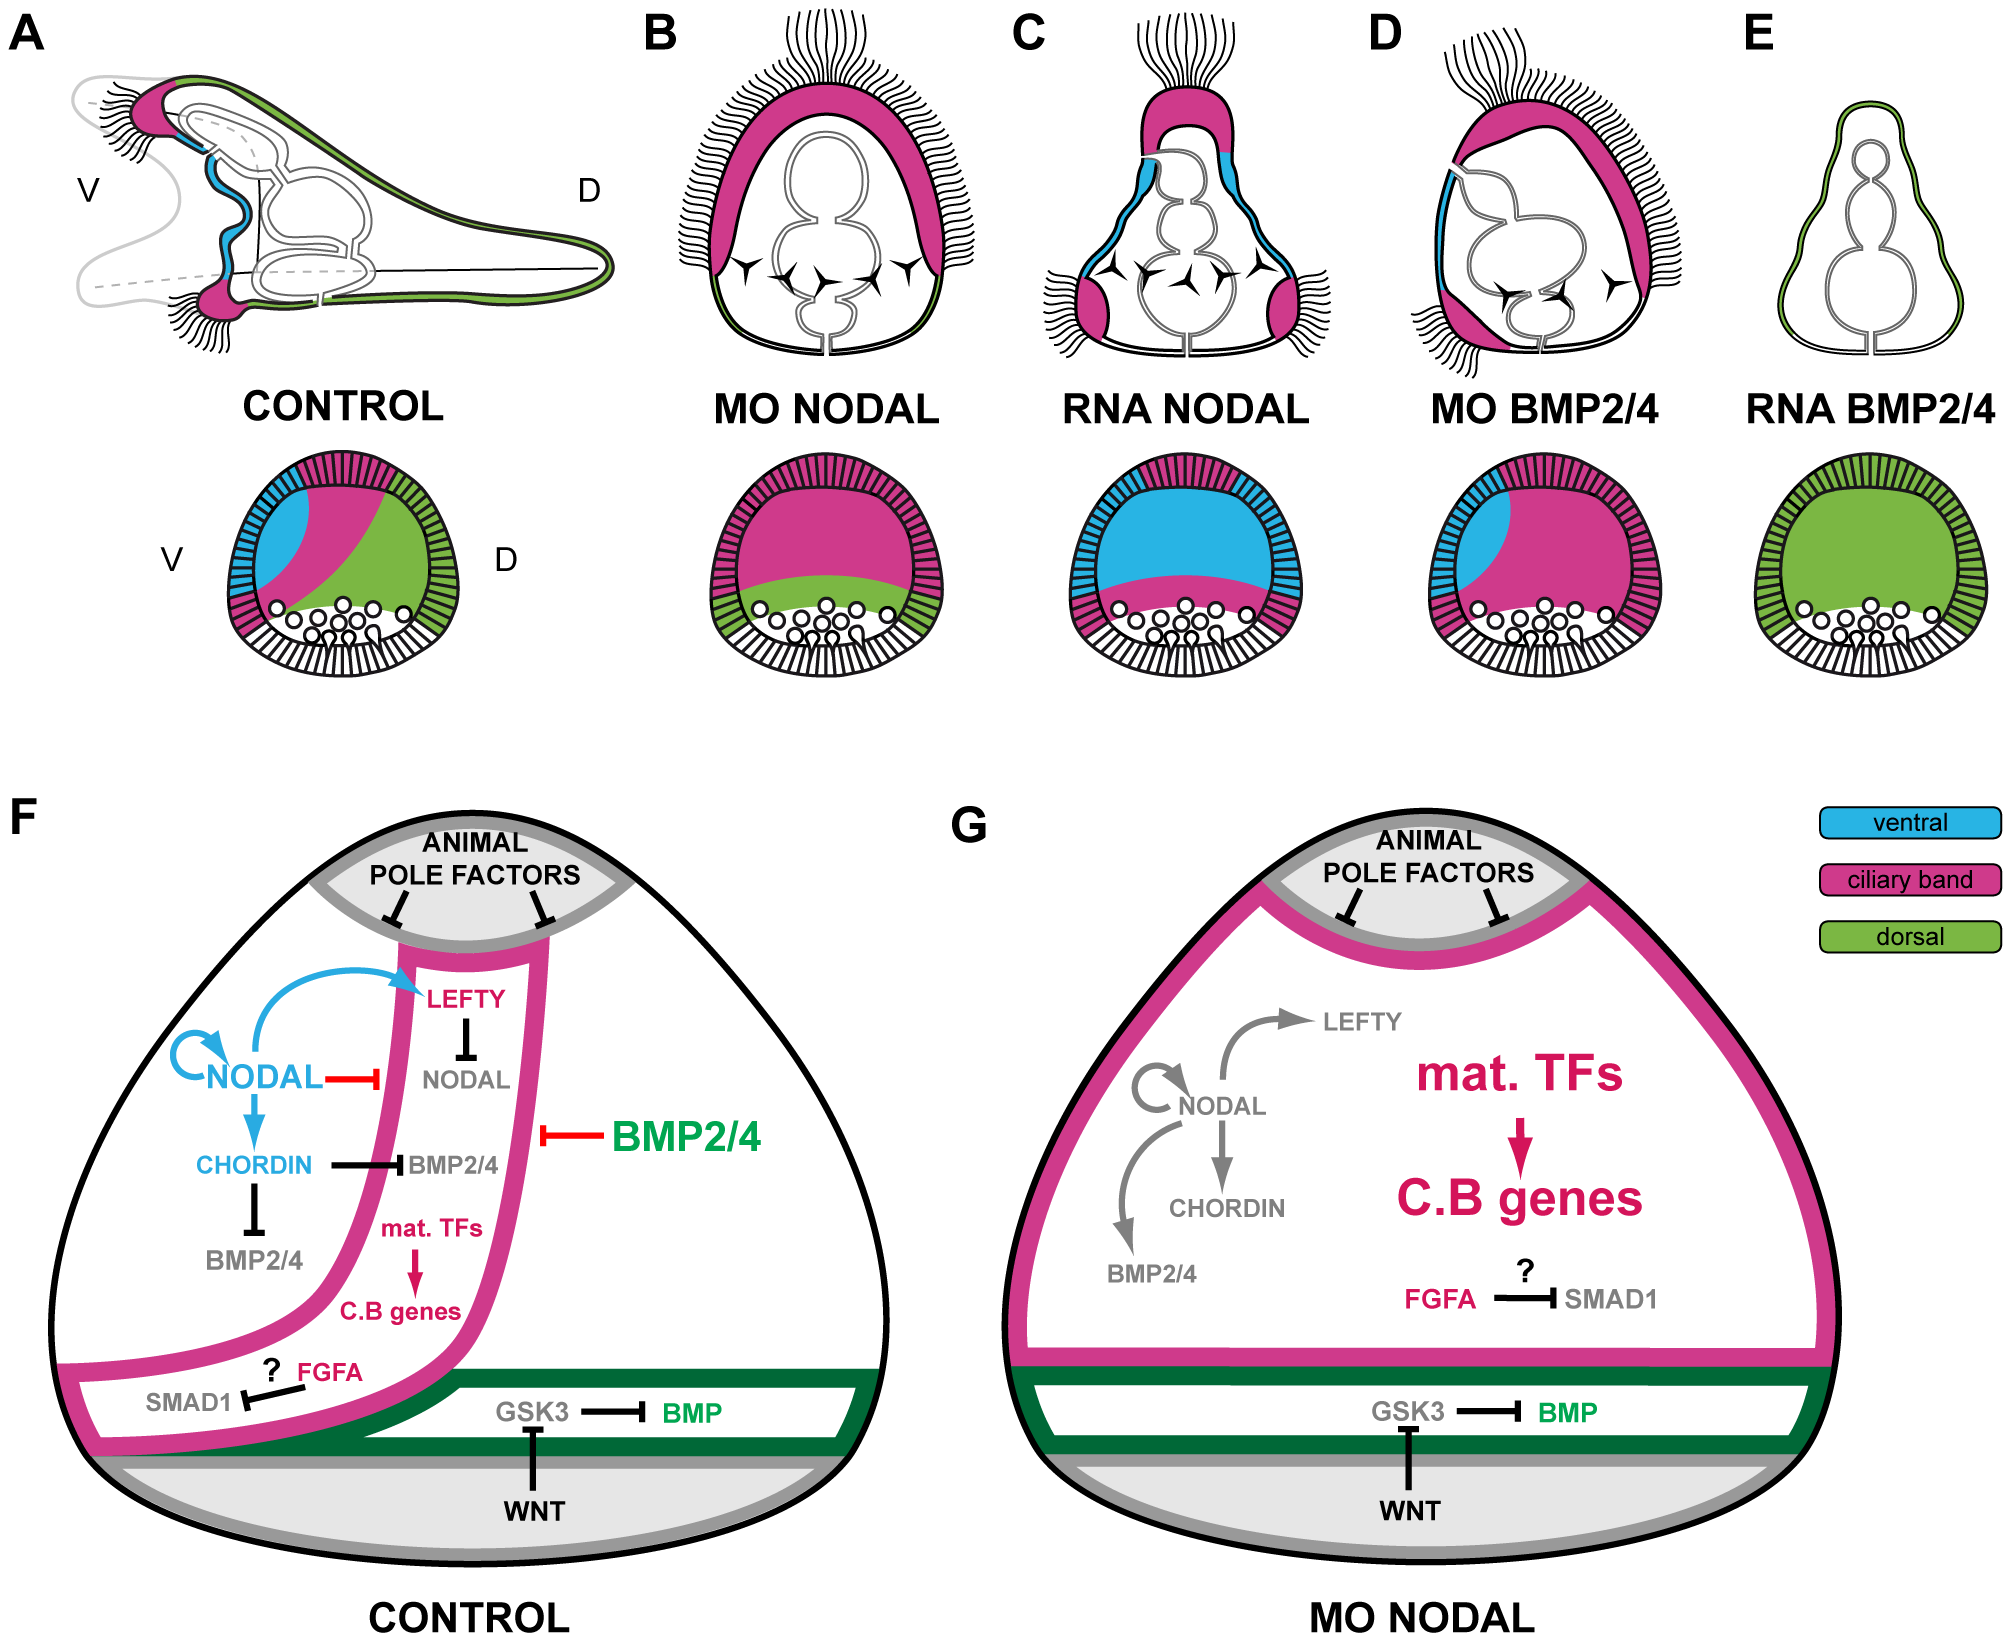 Changes in identity of ectodermal territories following perturbations of Nodal or BMP signaling and novel model of ectoderm patterning.